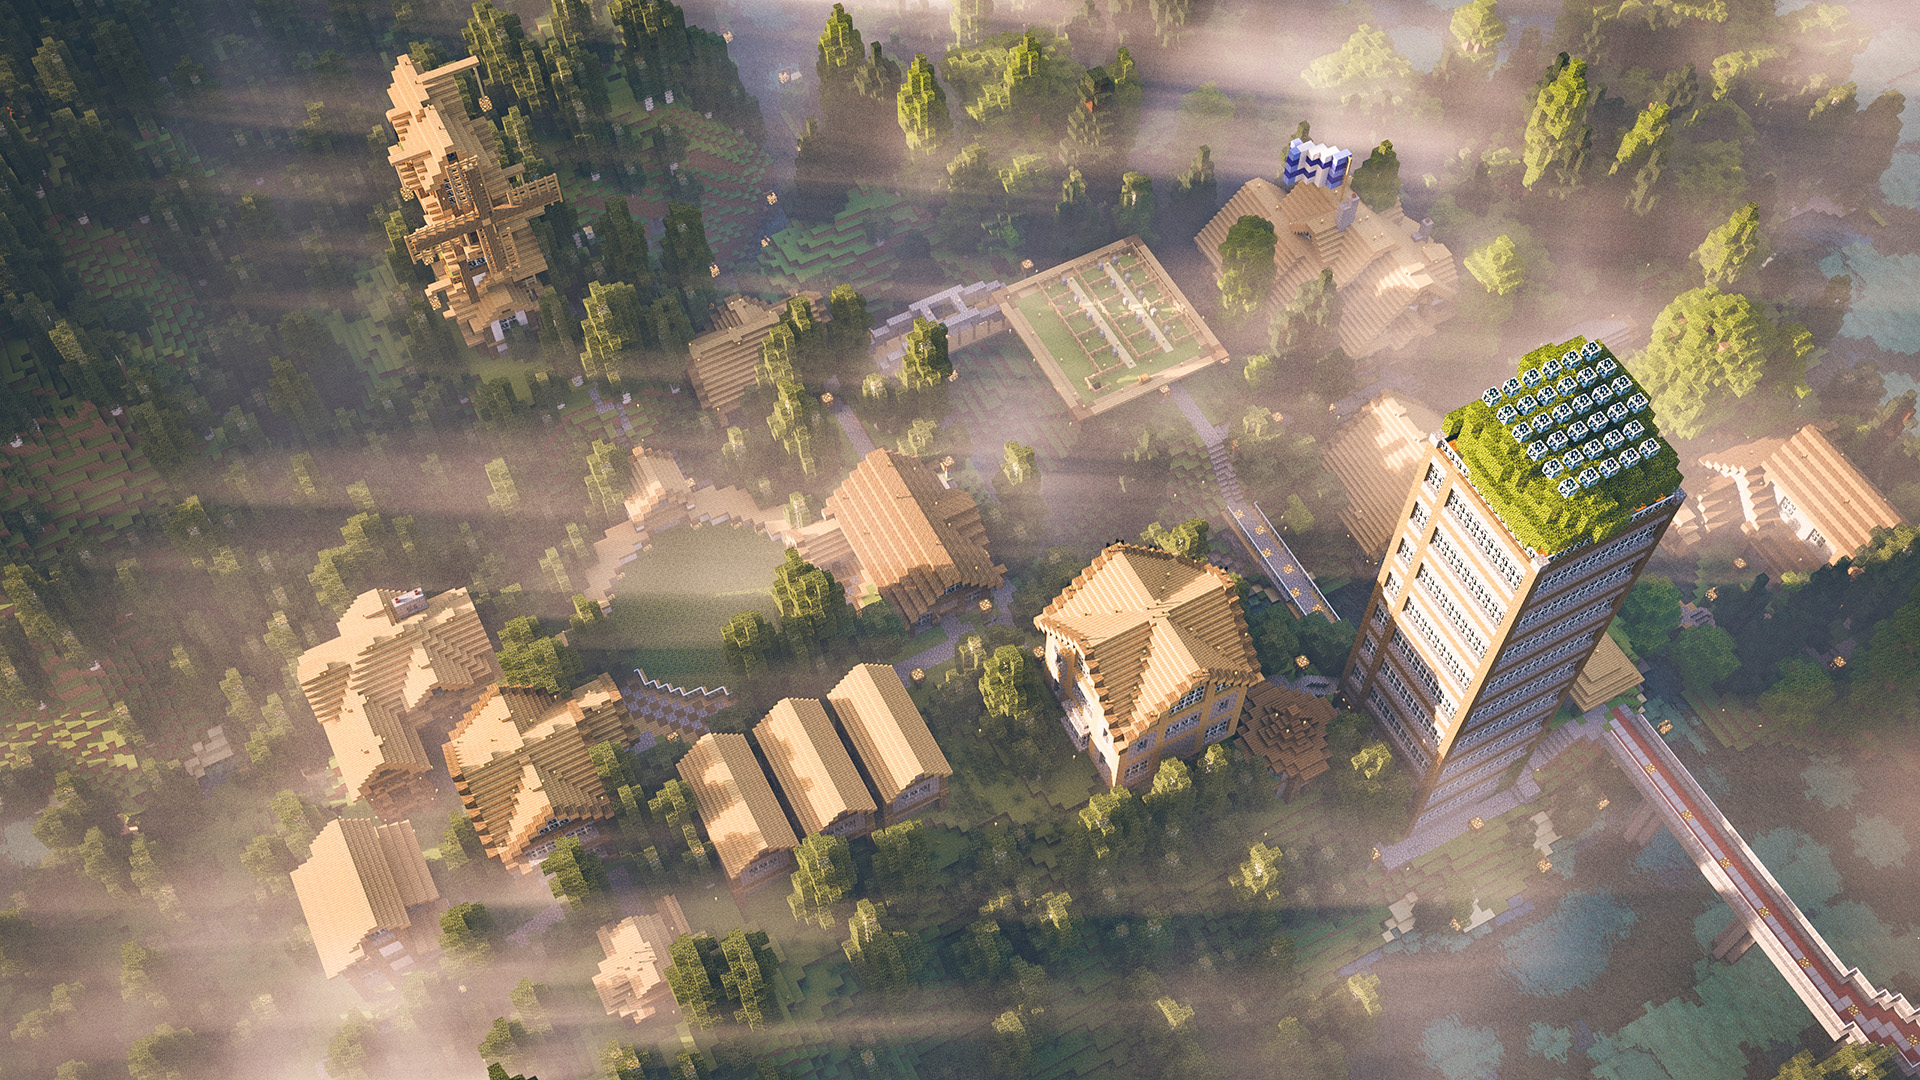 A Minecraft town from the pve.nerd.nu Minecraft server, rendered in Renderman 20/RIS.